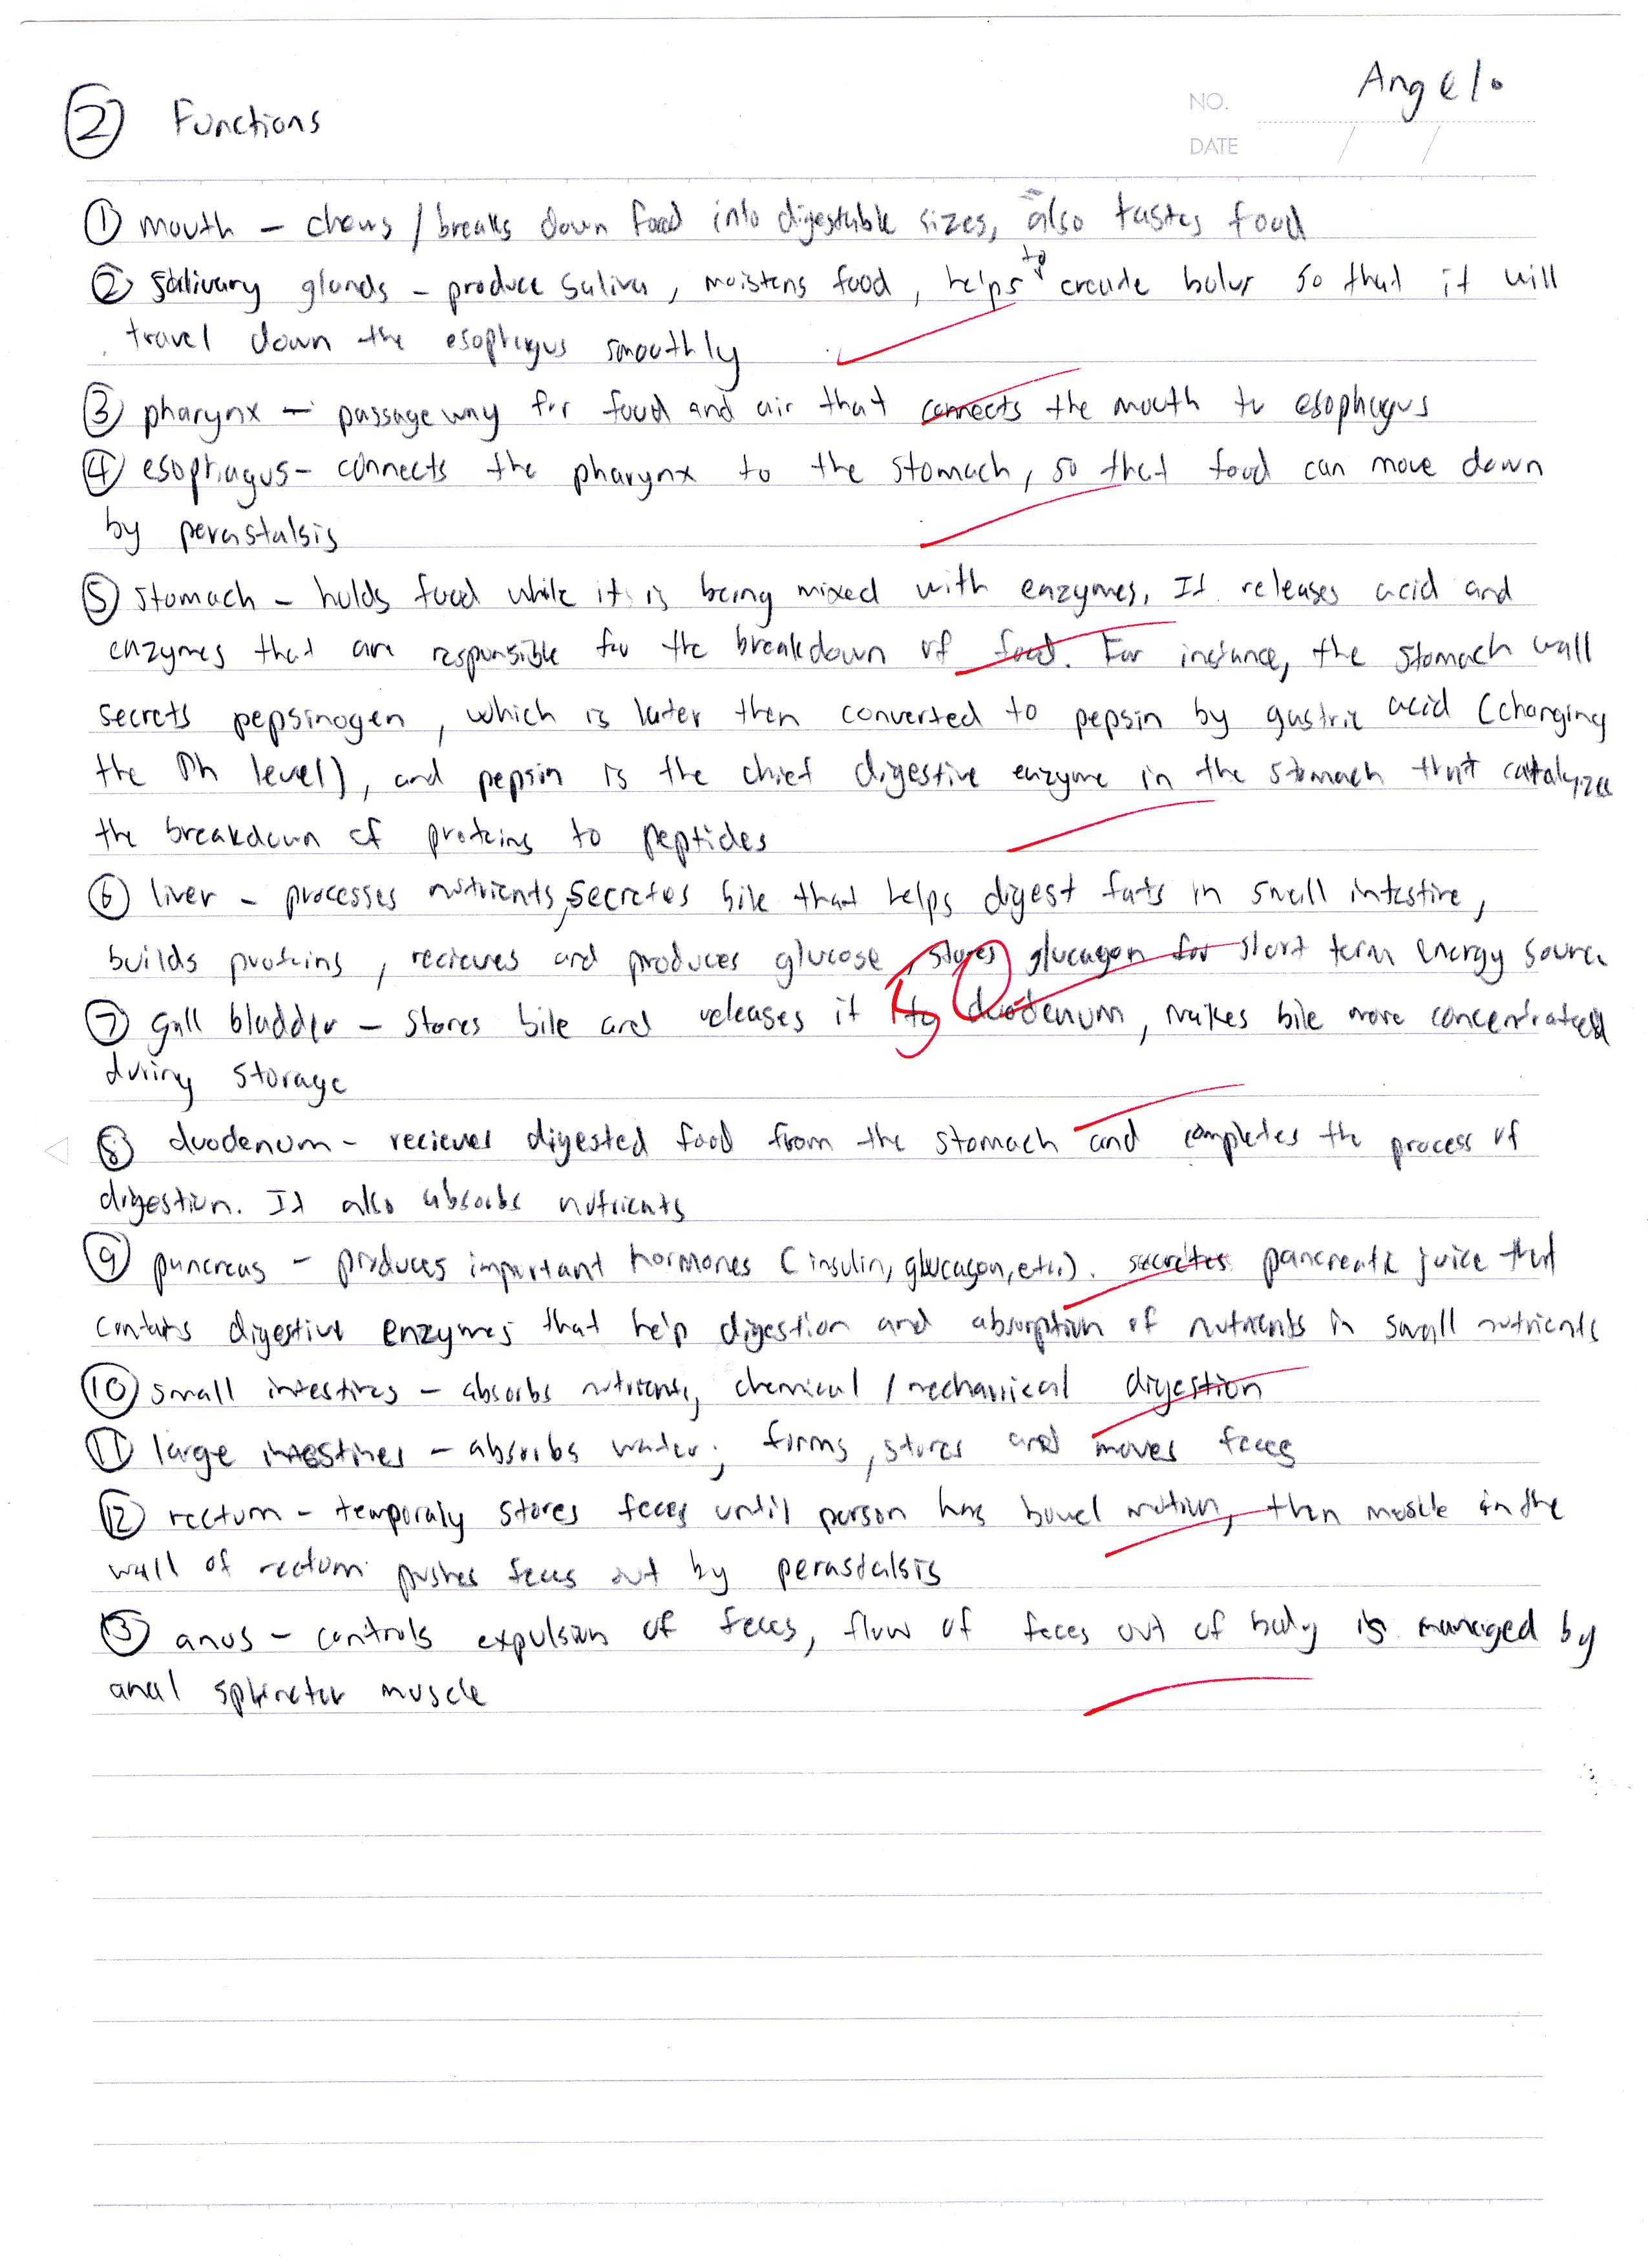 digestive system essay questions